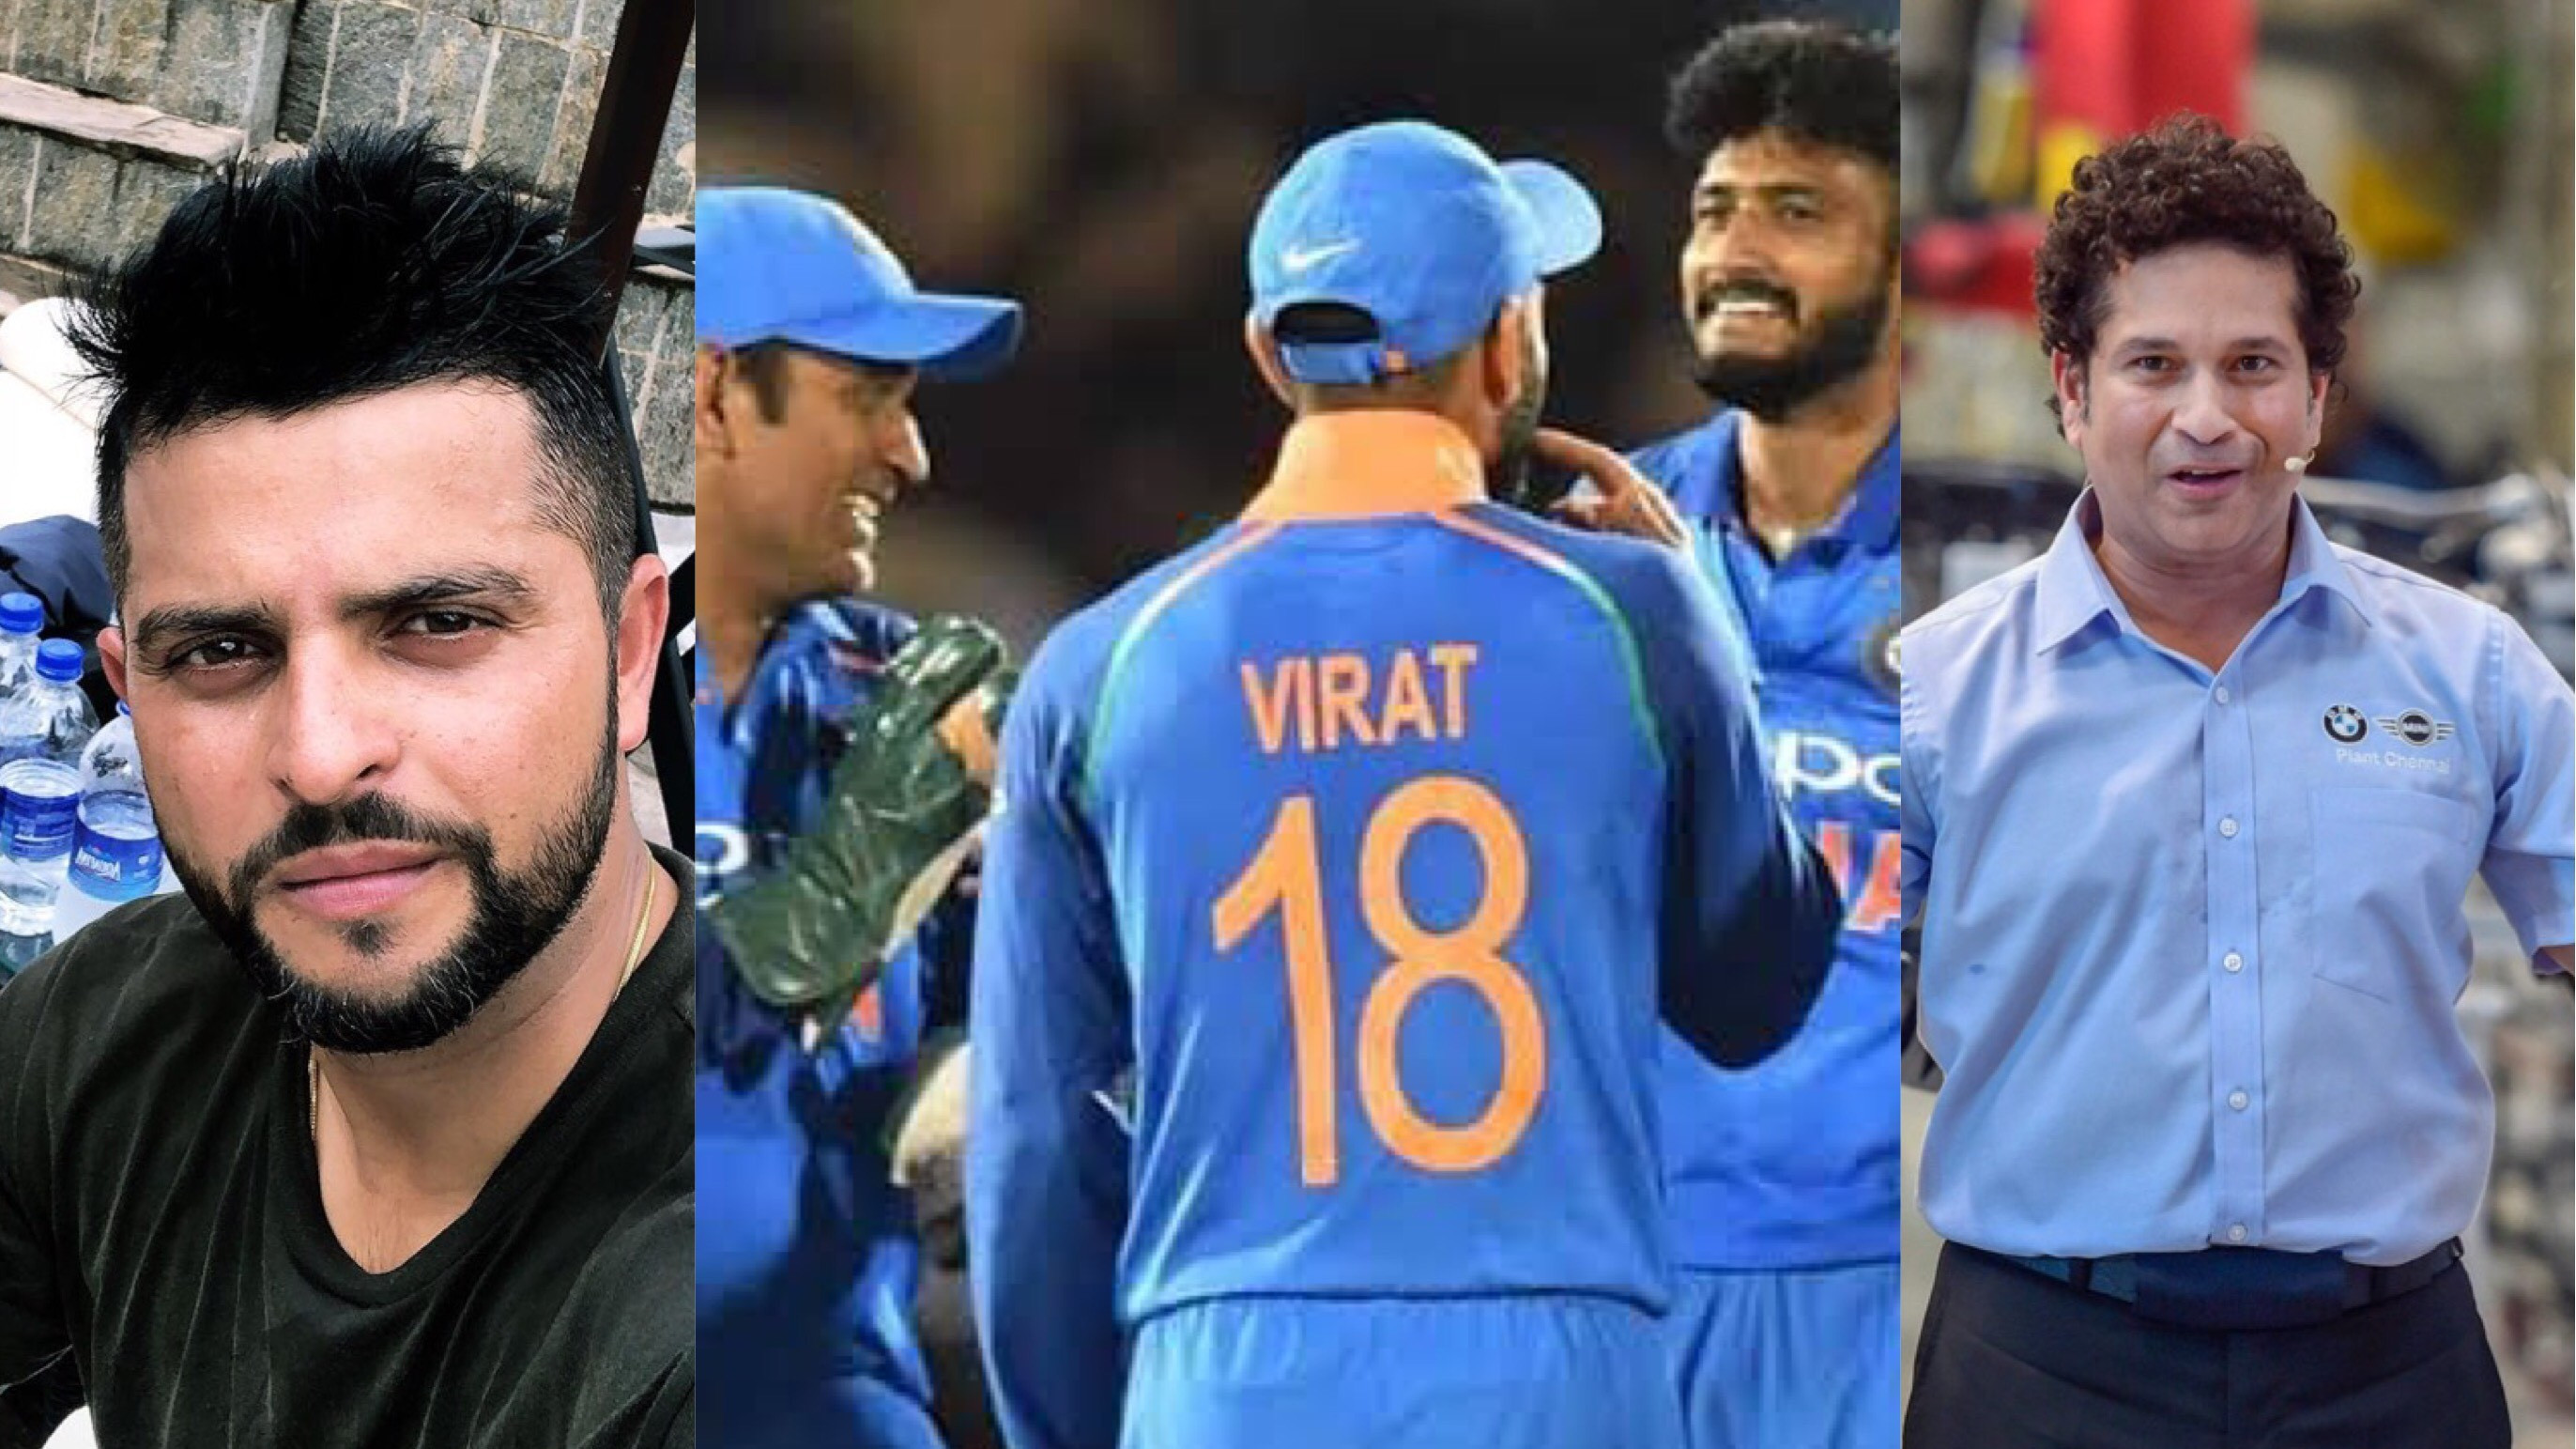 IND v WI 2018: Twitter reacts to India's resounding 224-run victory over Windies in the fourth ODI